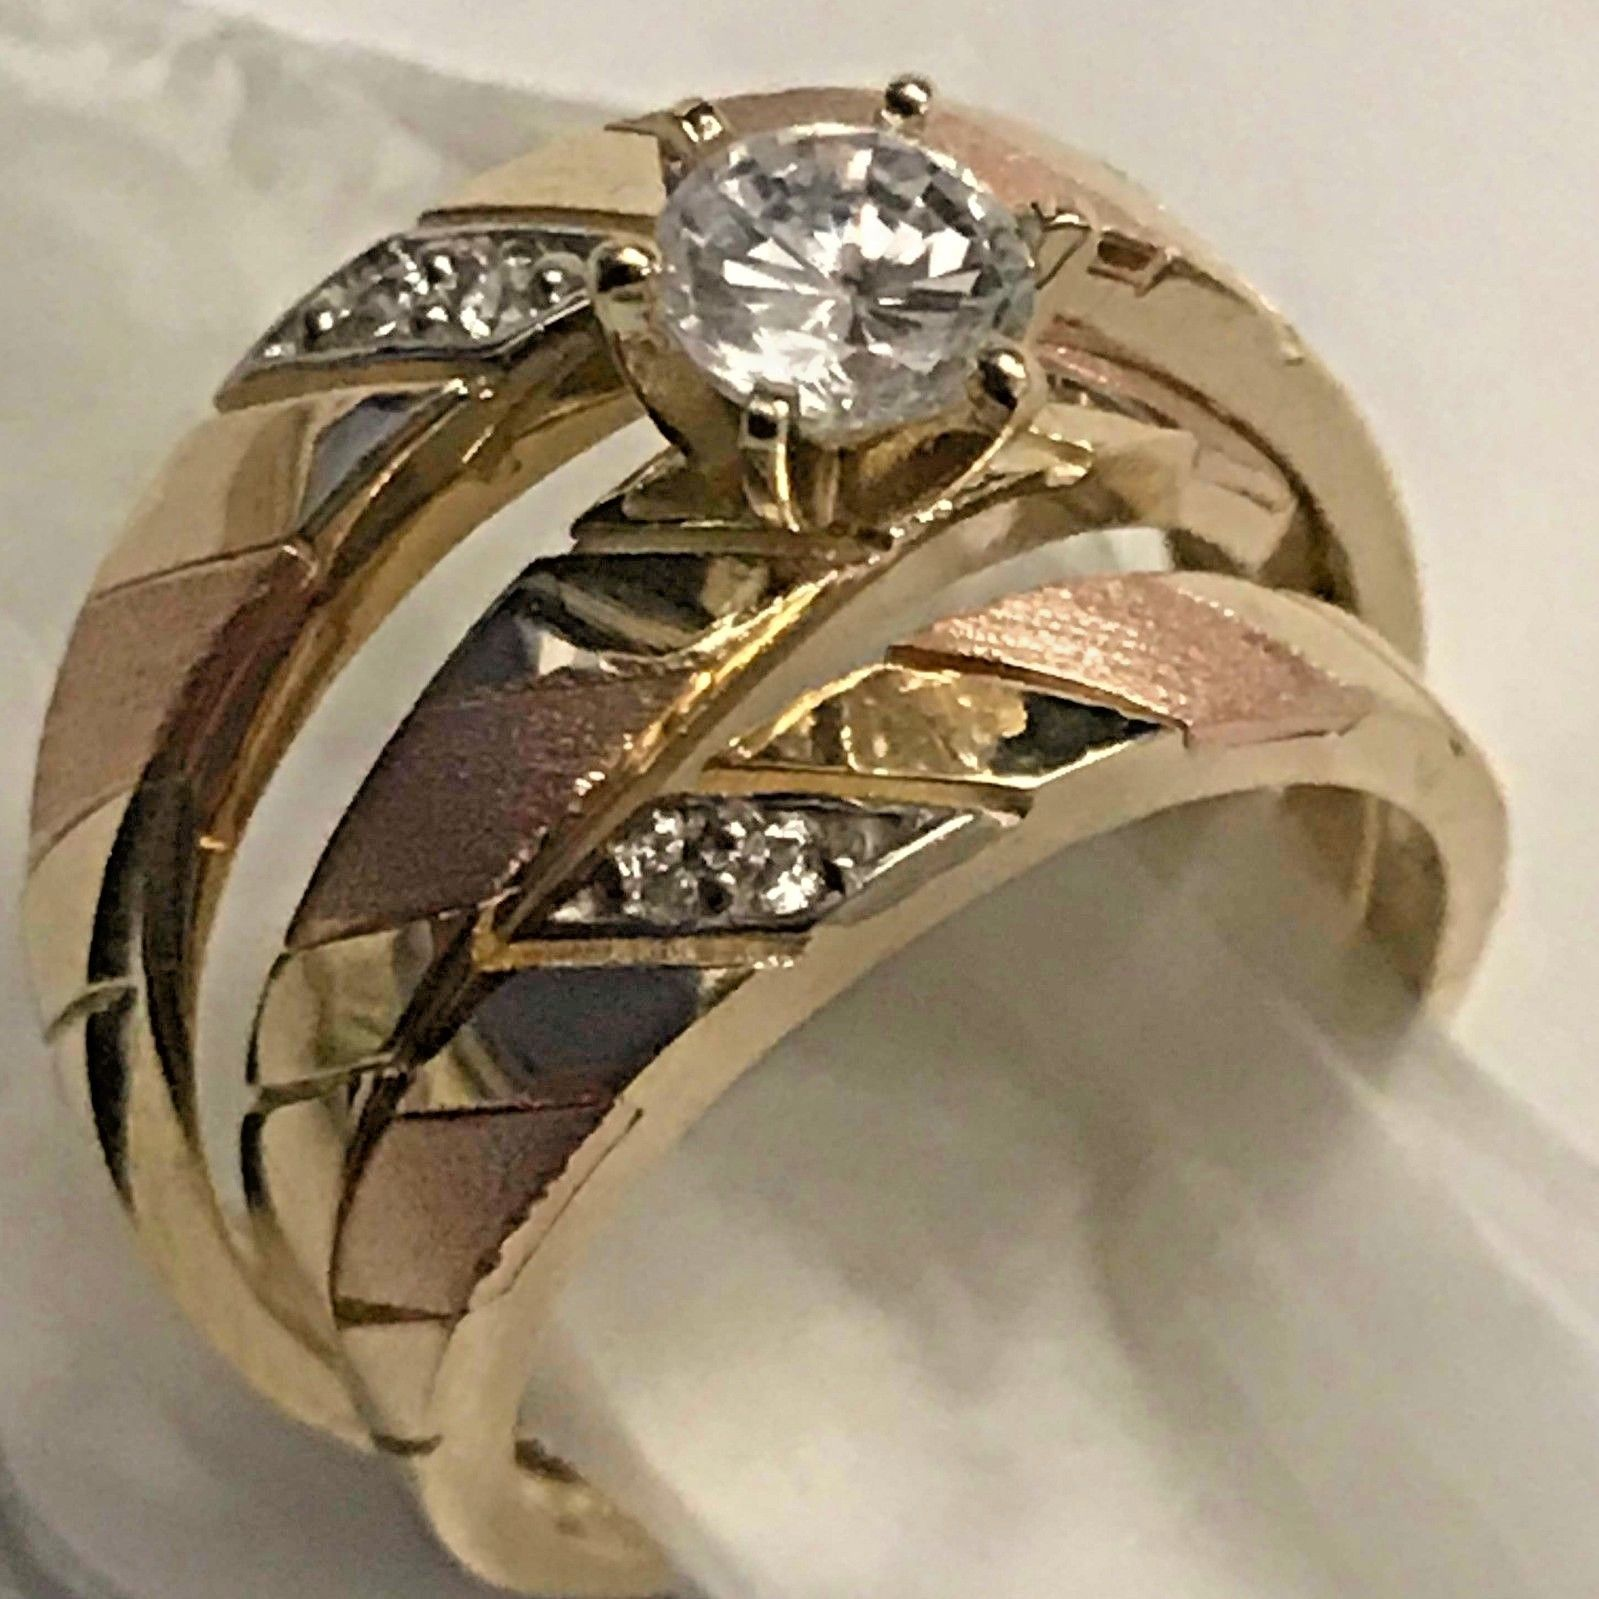 HCJ Stainless Steel 4 Carat CZ Men/'s Detailed Band Wedding Ring SIZE 9 10